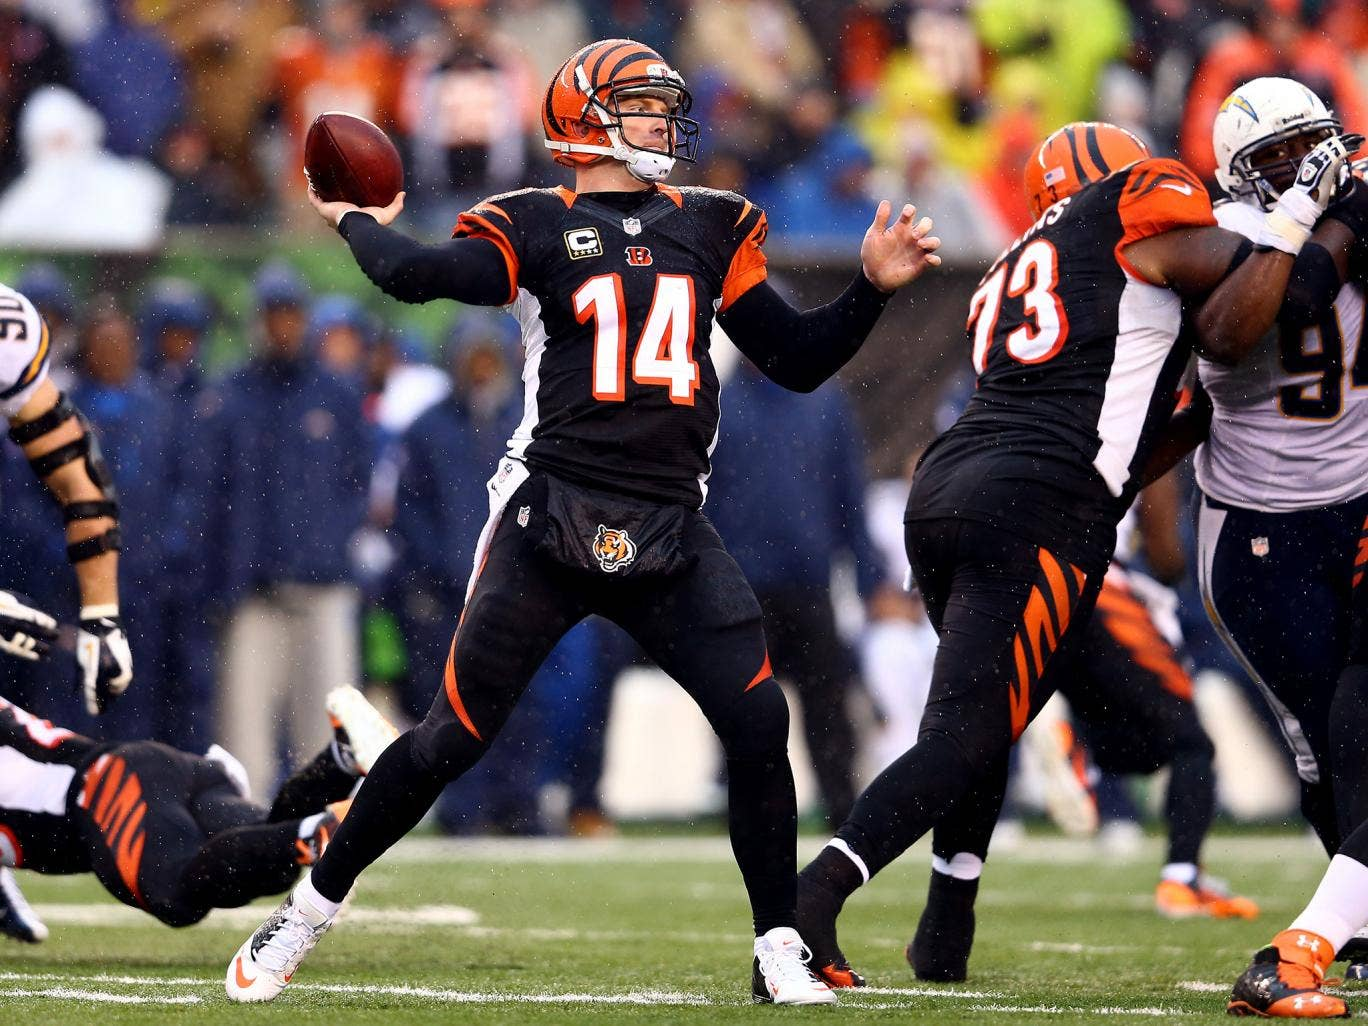 The Cincinnati Bengals have handed Andy Dalton a six-year, $115m contract extension